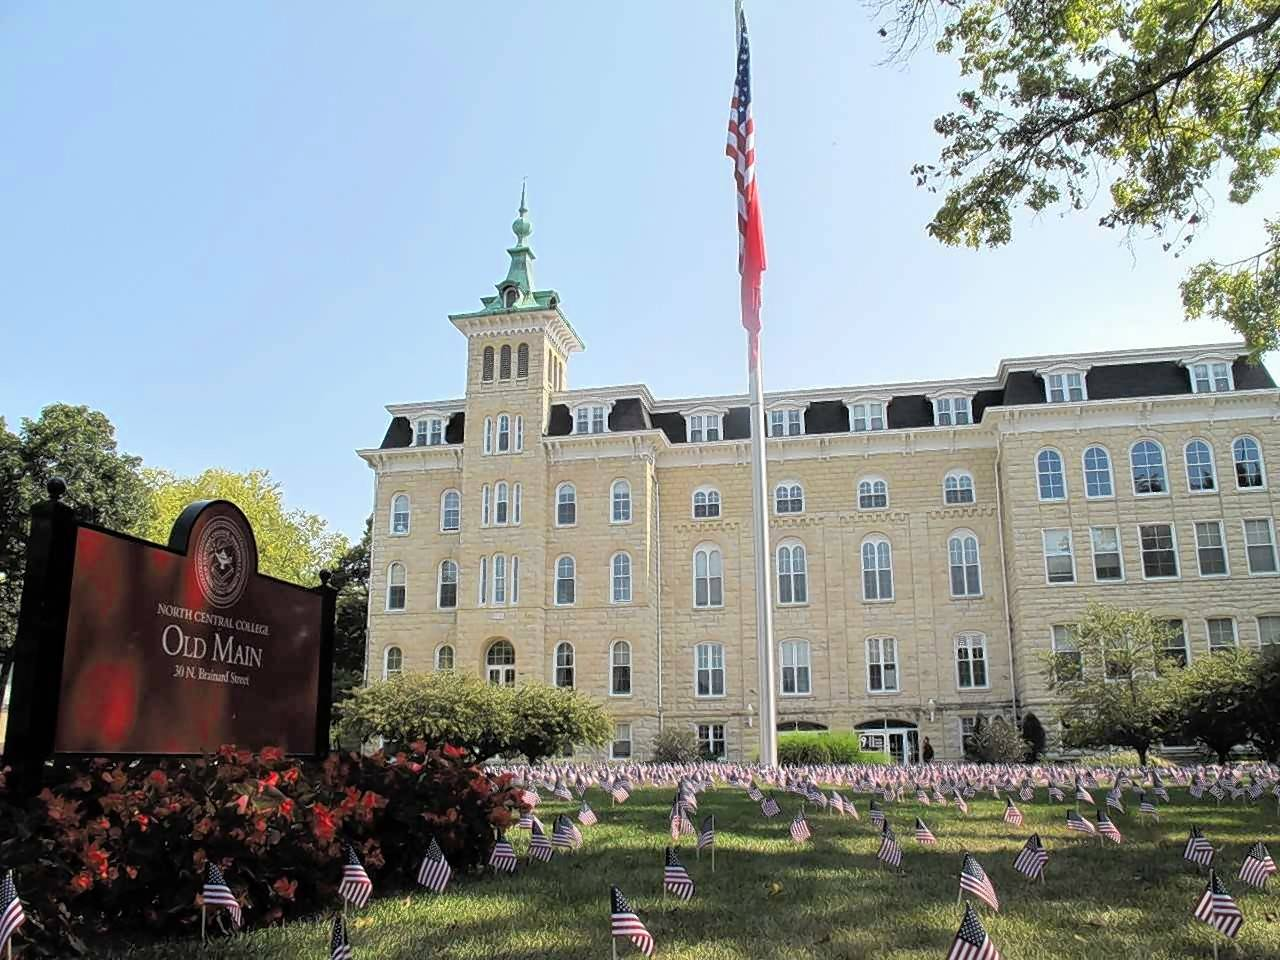 A display of 2,977 flags to represent the victims of the Sept. 11 terrorist attacks takes up the lawn west of Old Main at North Central College in Naperville as part of the Never Forget Project, which involves similar flag setups at more than 200 campuses.